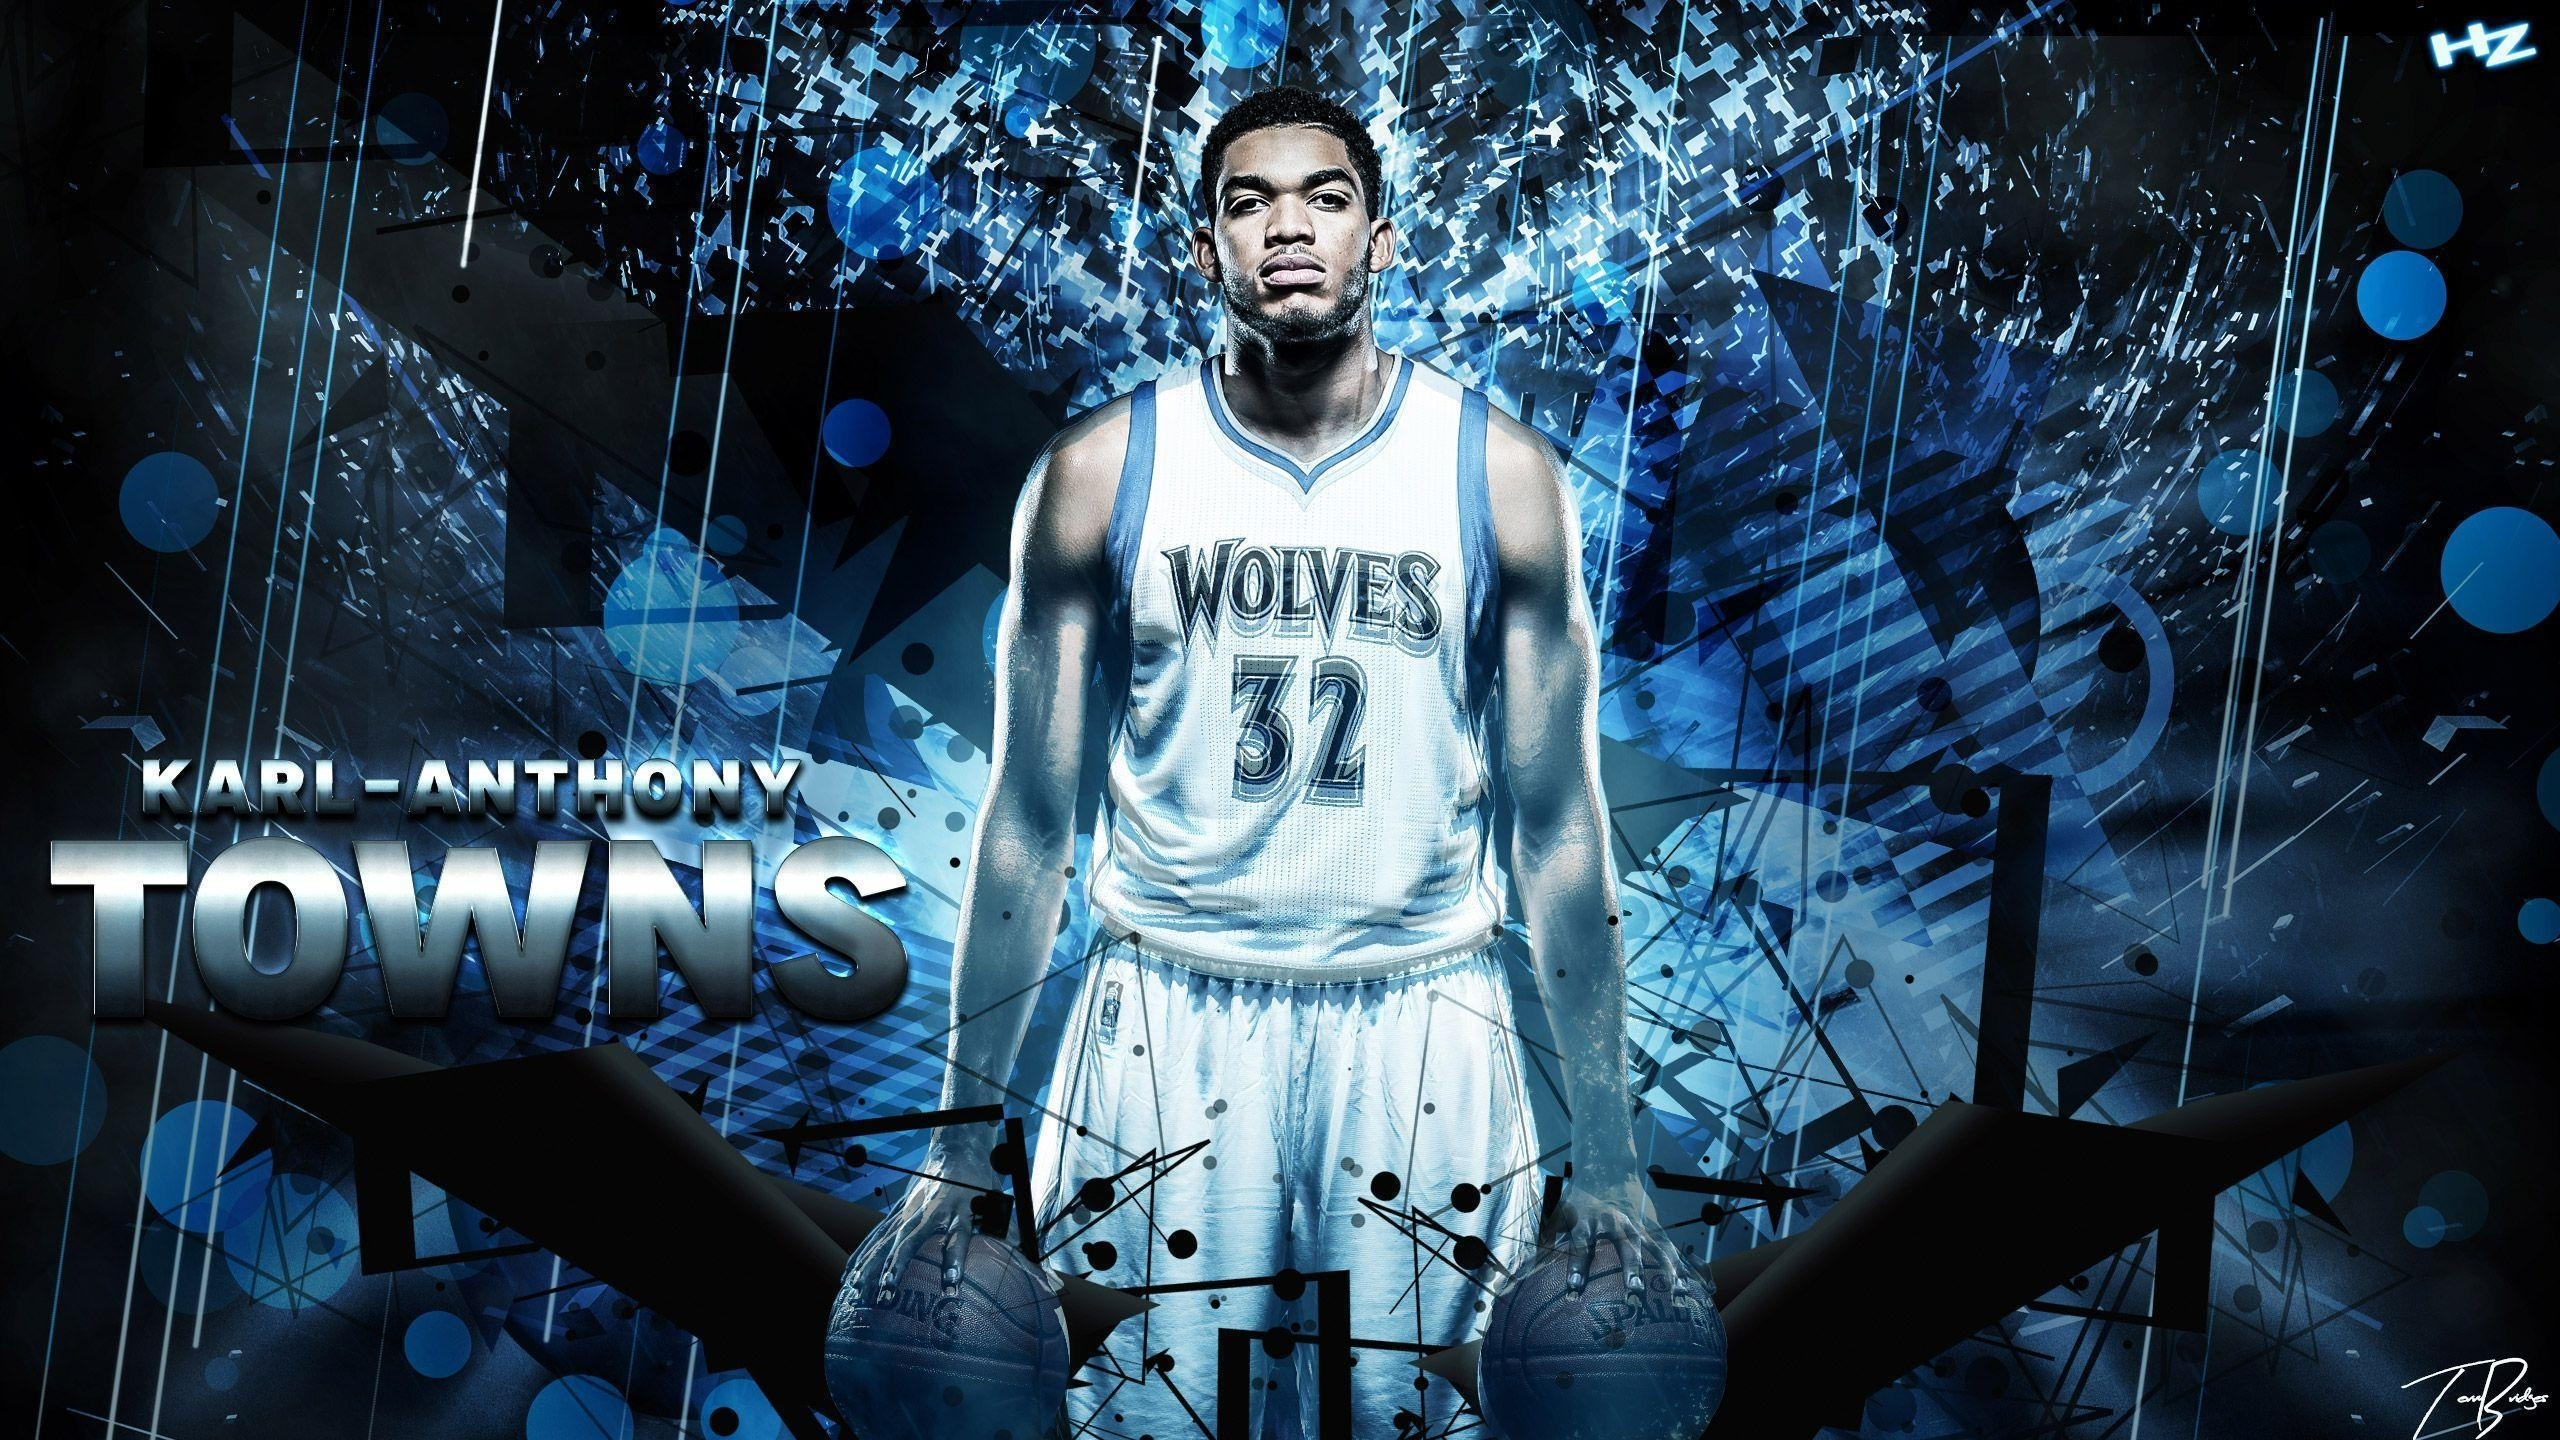 karl-anthony towns wallpapers - wallpaper cave